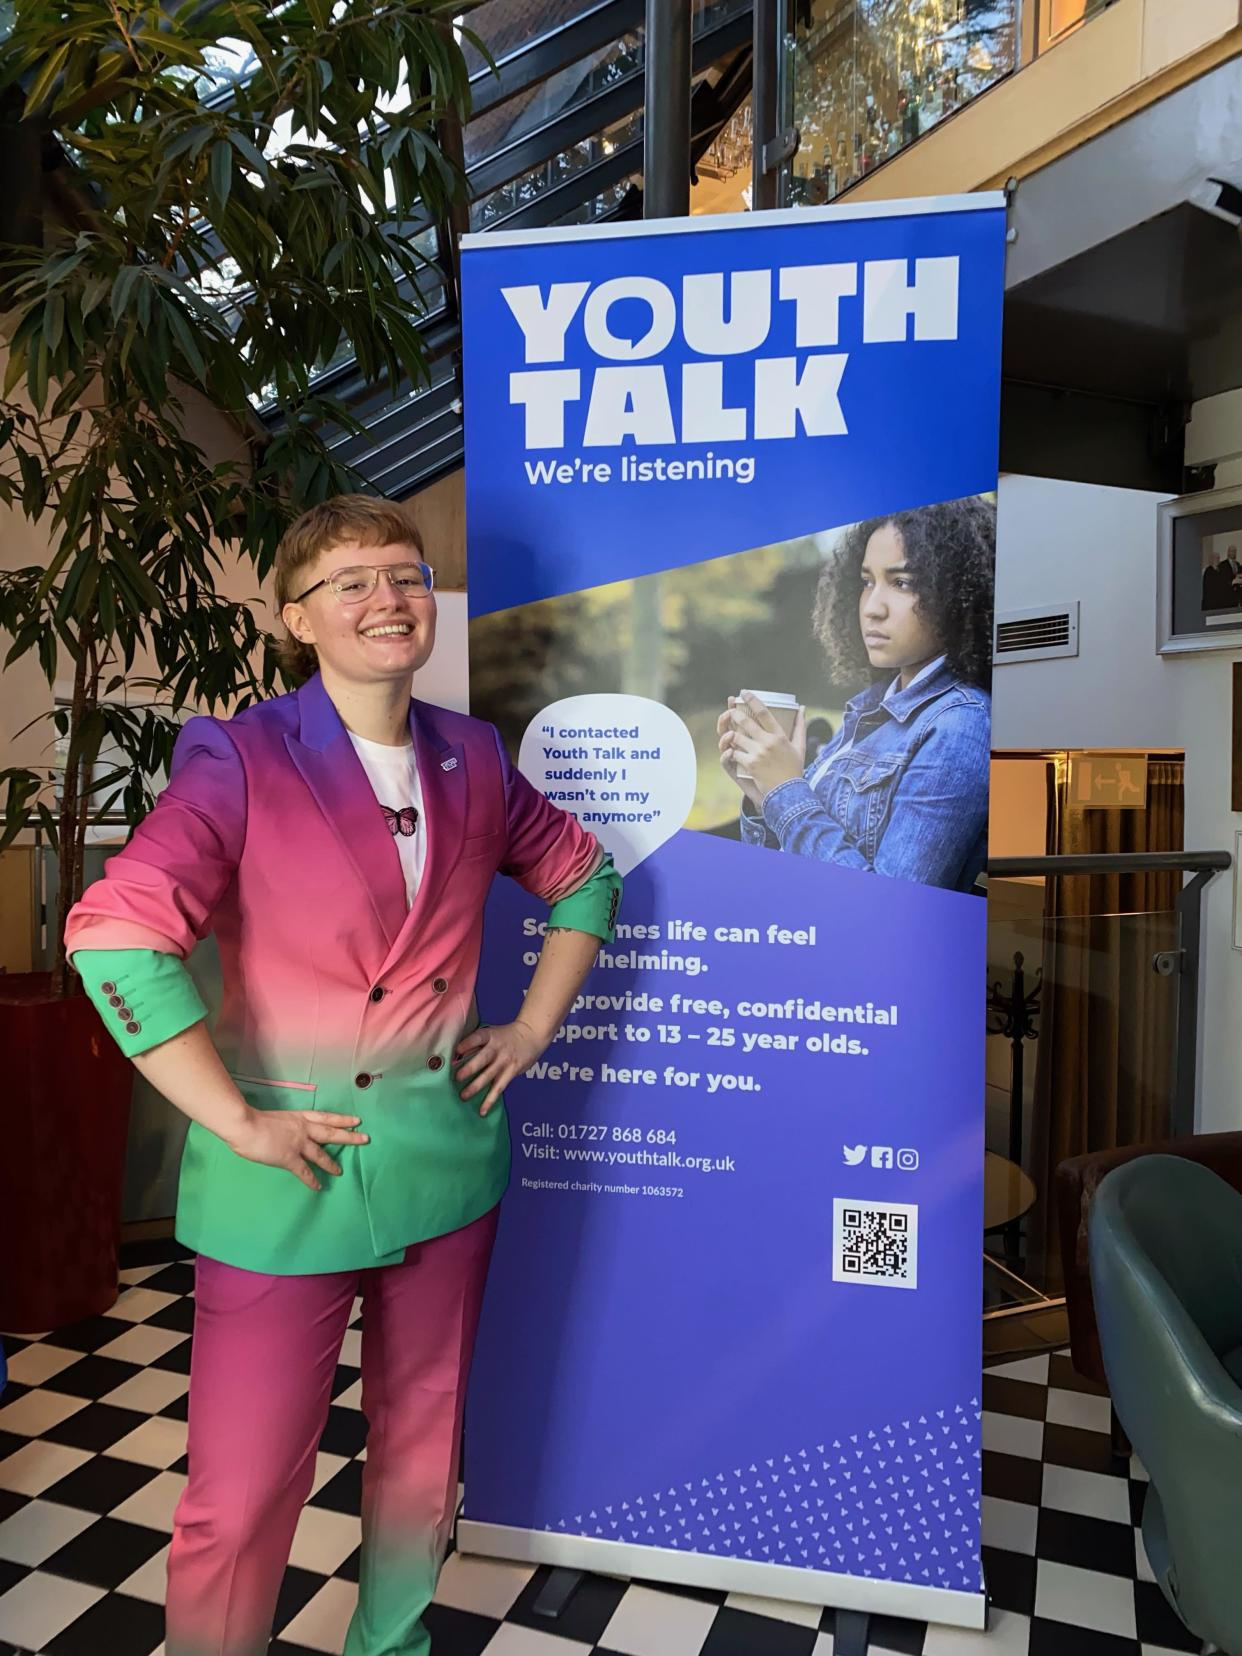 Mia Arundel works with Youth Talk to help support other young people. (Supplied)